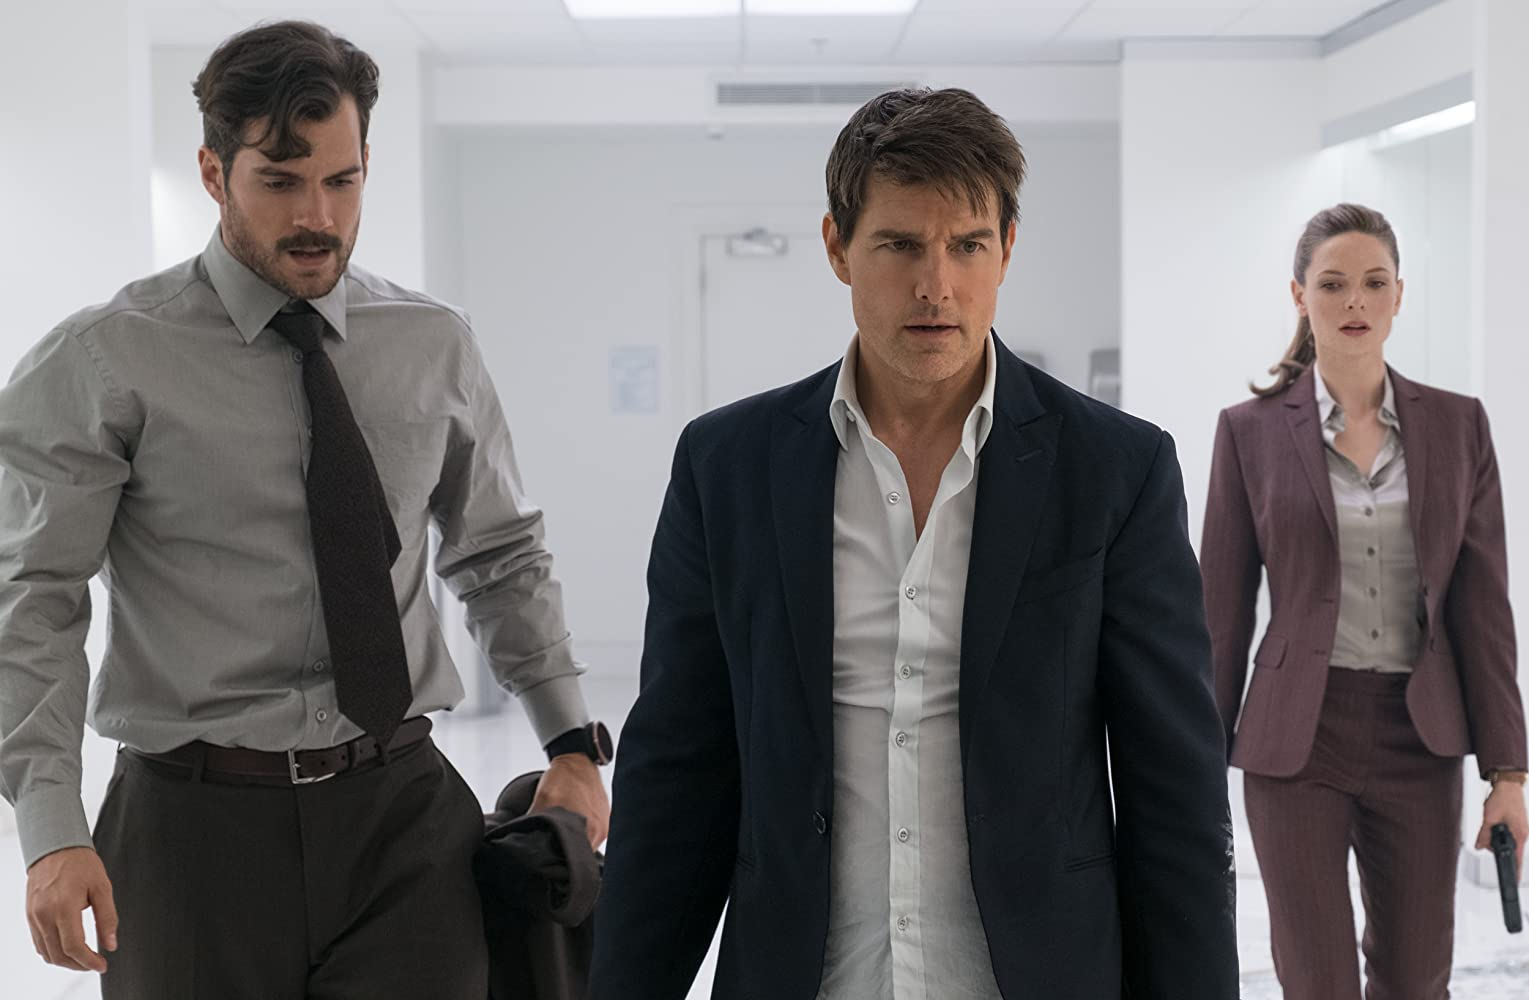 Tom Cruise, Henry Cavill, and Rebecca Ferguson in Mission: Impossible - Fallout (2018)